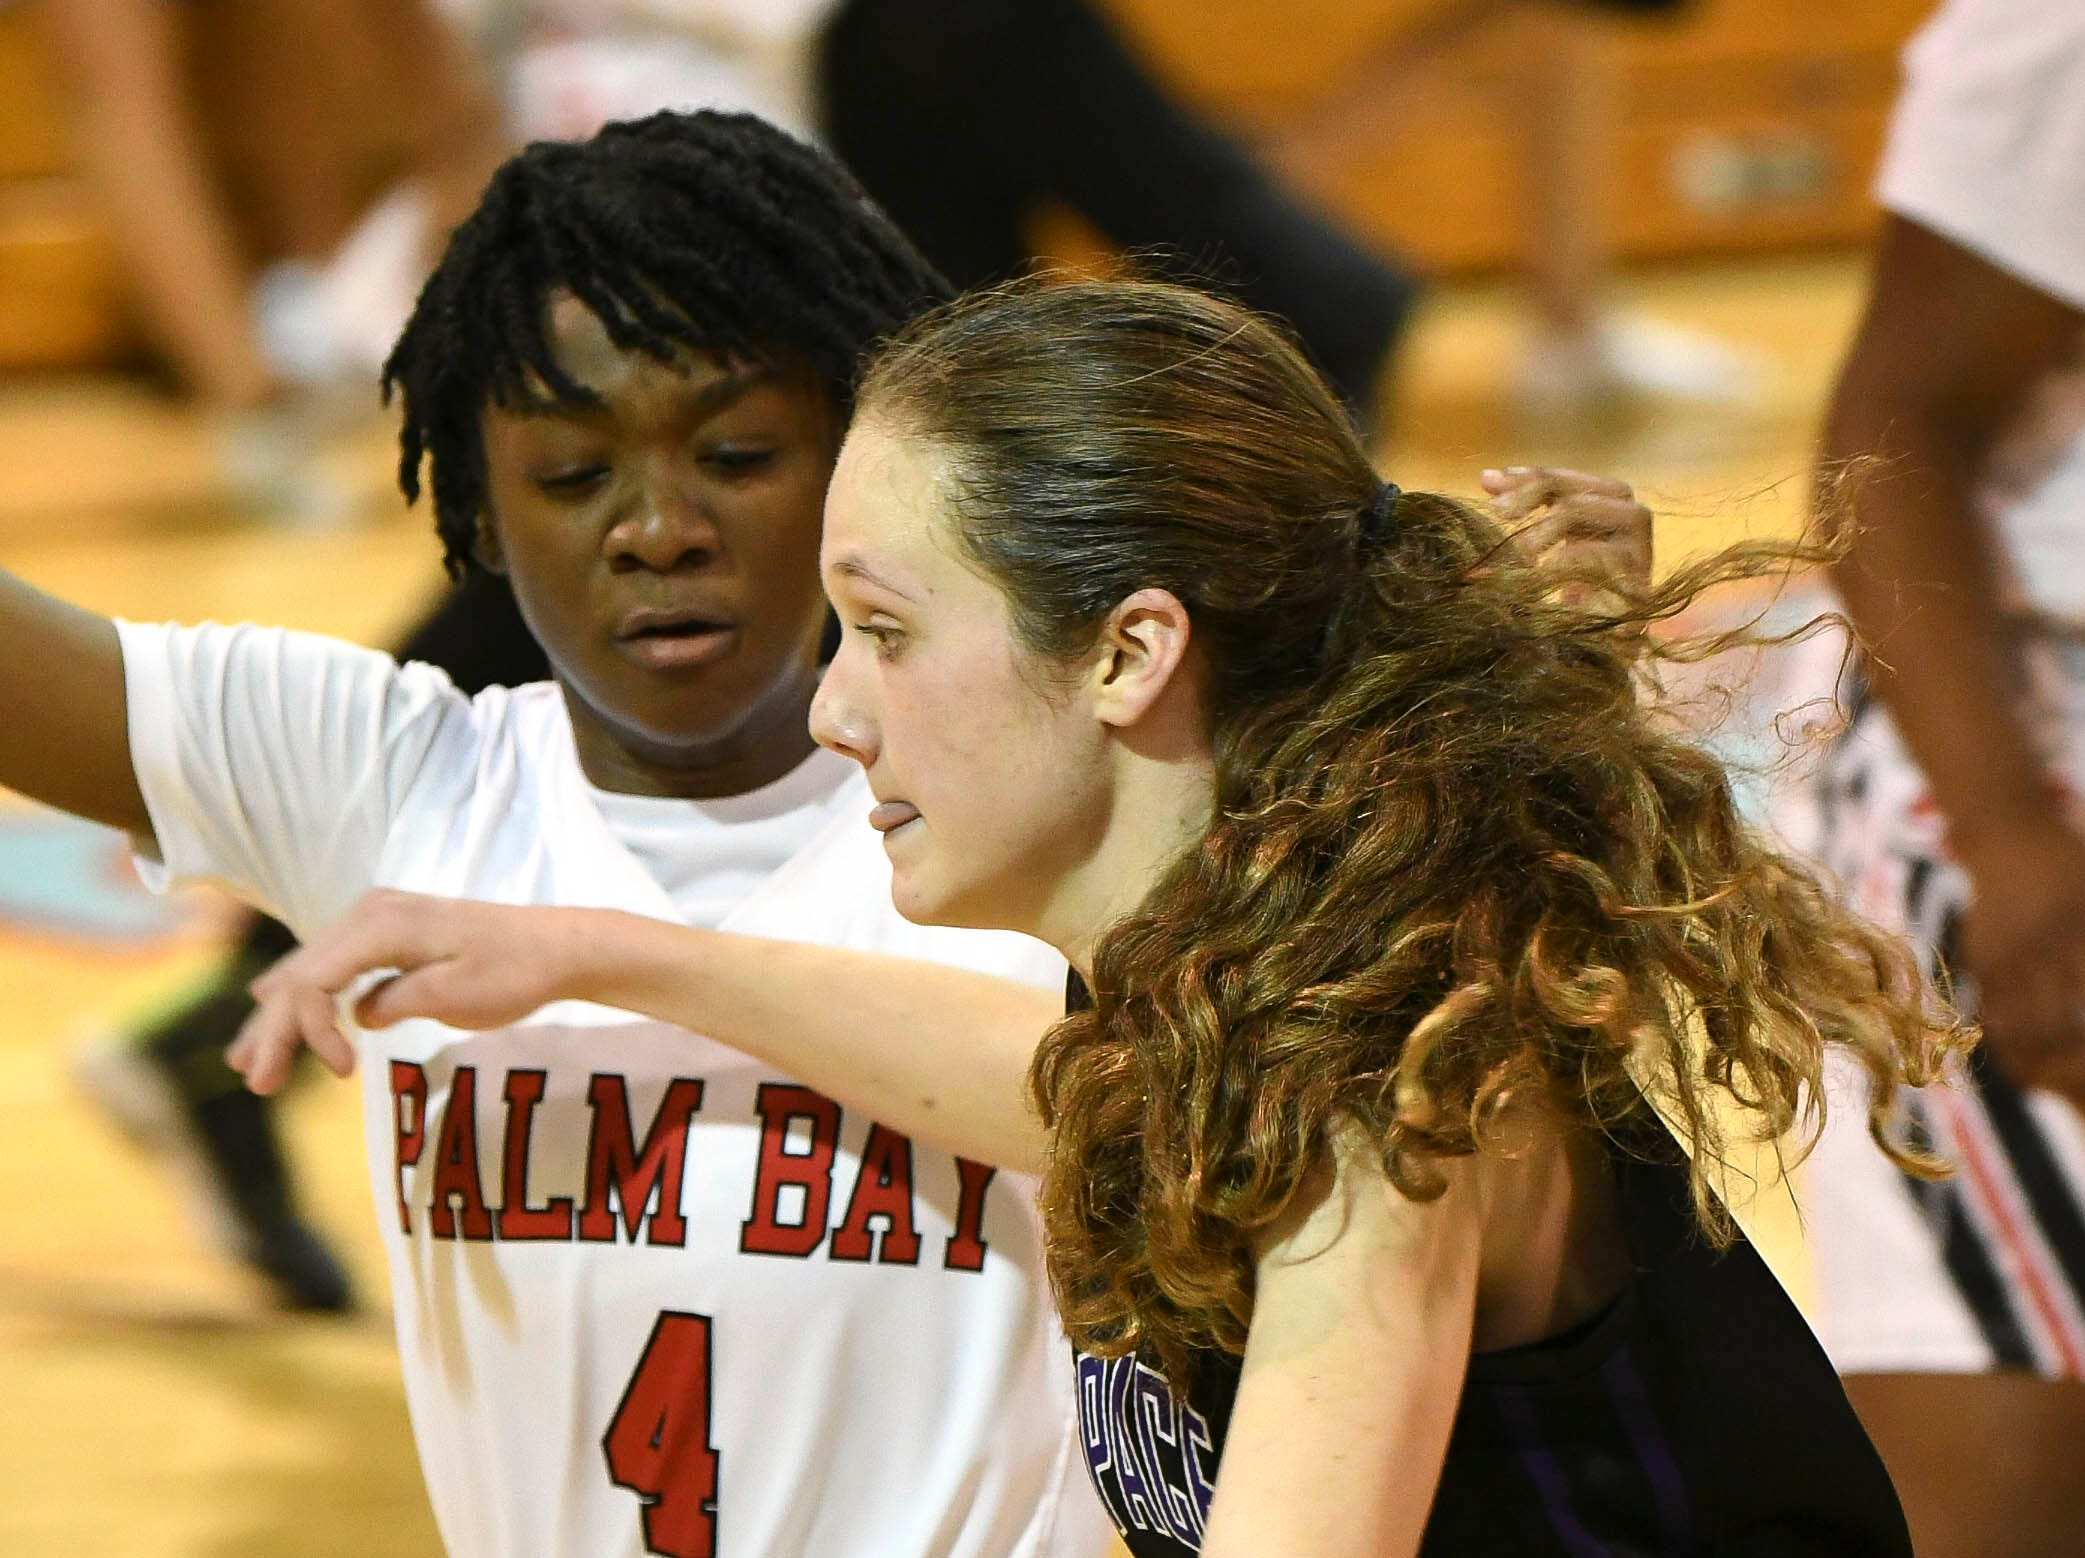 Ashley Cathon of Space Coast is guarded by Palm Bay's Mykaila Burgher during Thursday's District 14-6A basketball tournament semifinal at Rockledge High School.